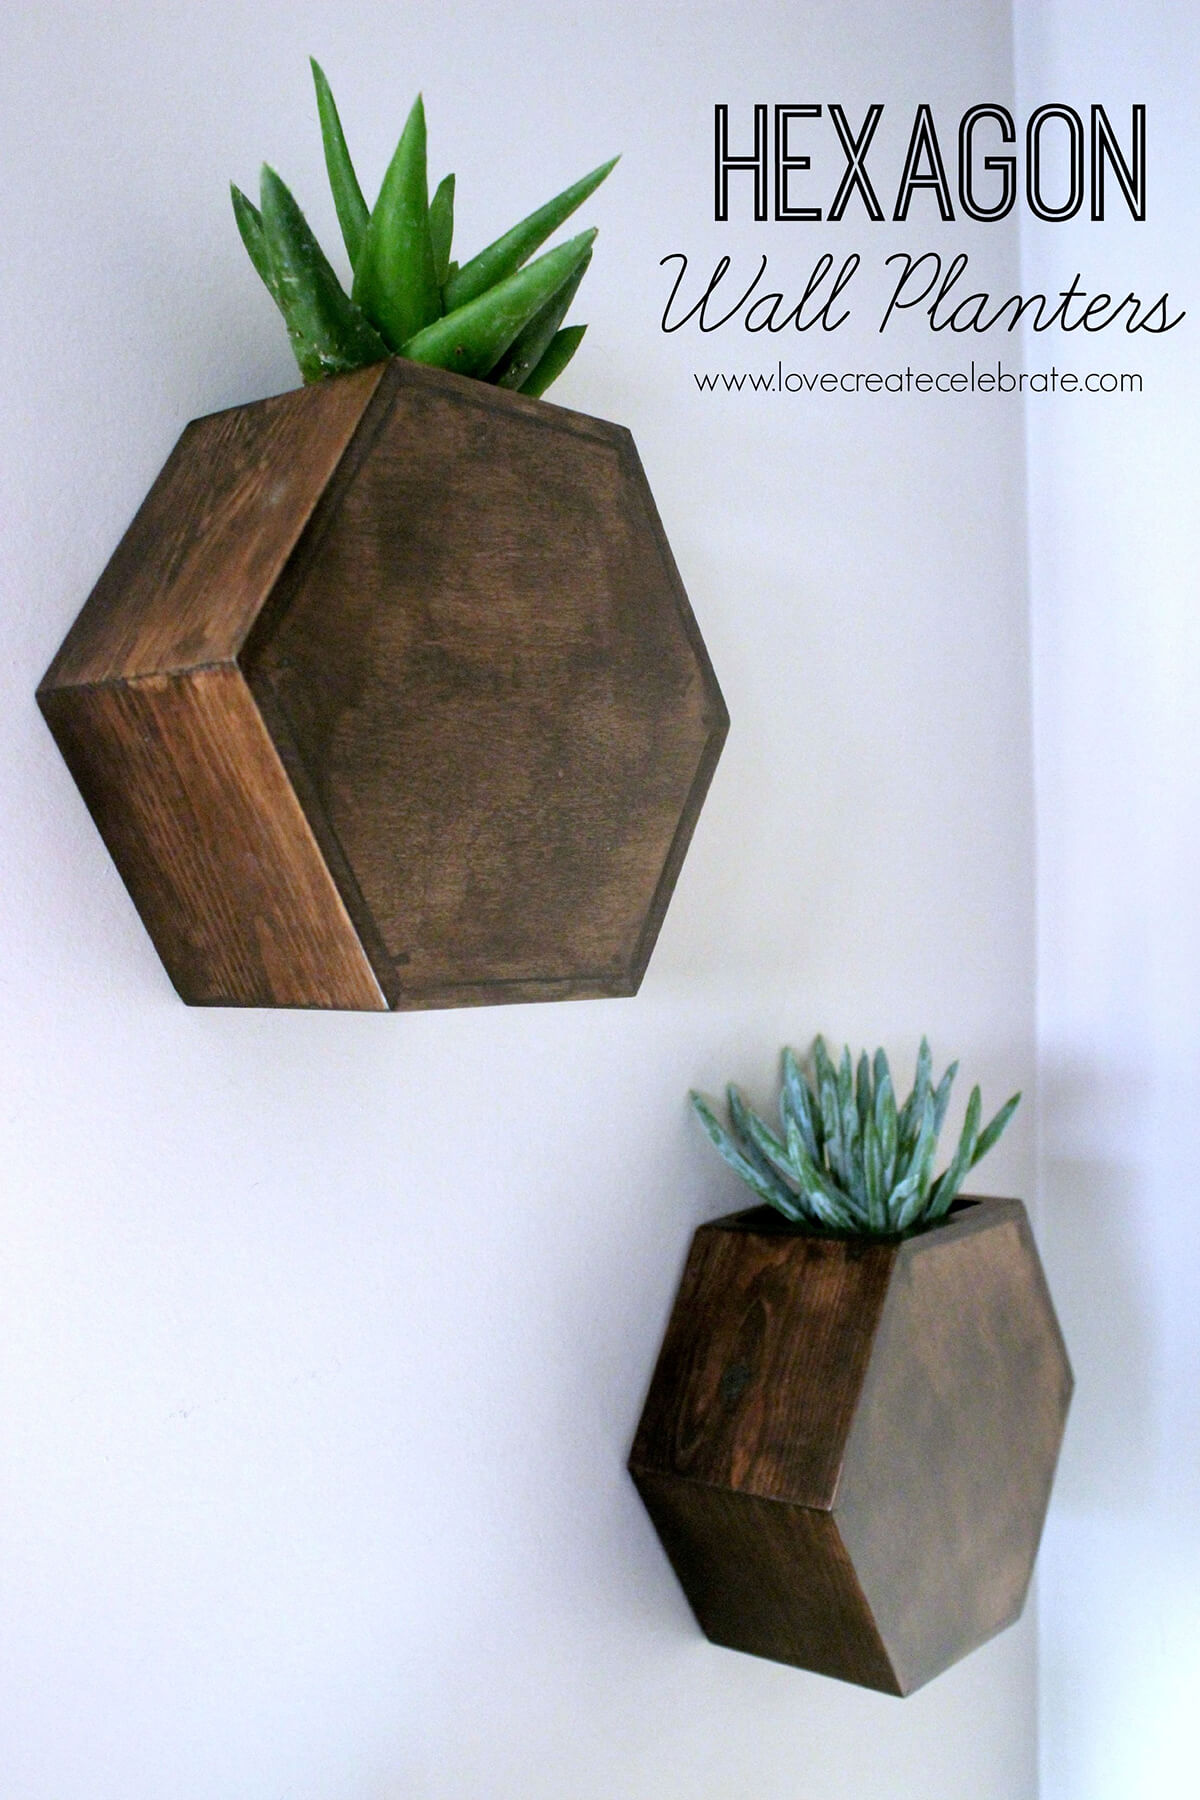 Modern Style Hexagonal Wall Planters